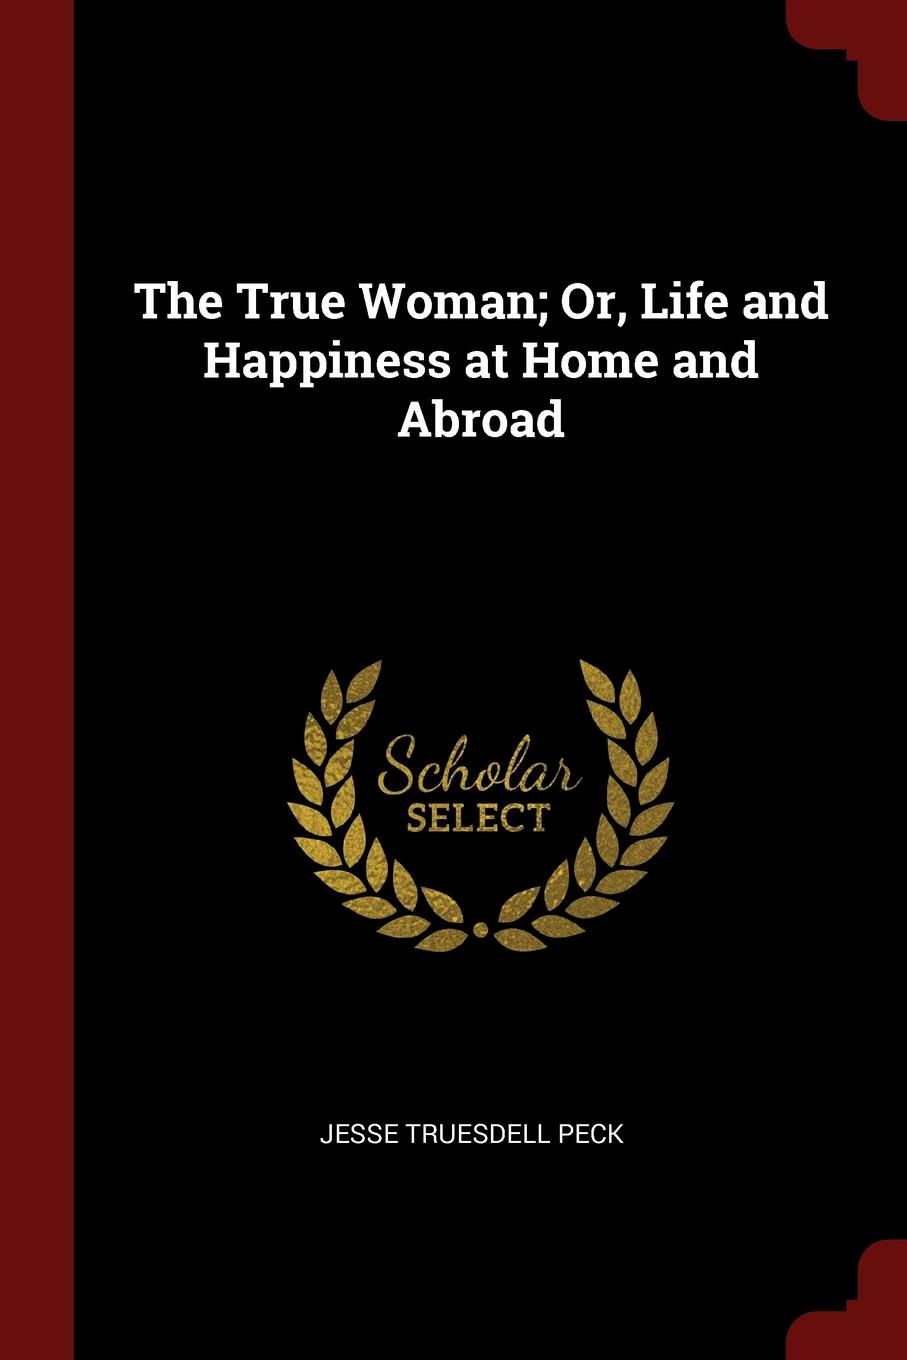 Jesse Truesdell Peck The True Woman; Or, Life and Happiness at Home and Abroad